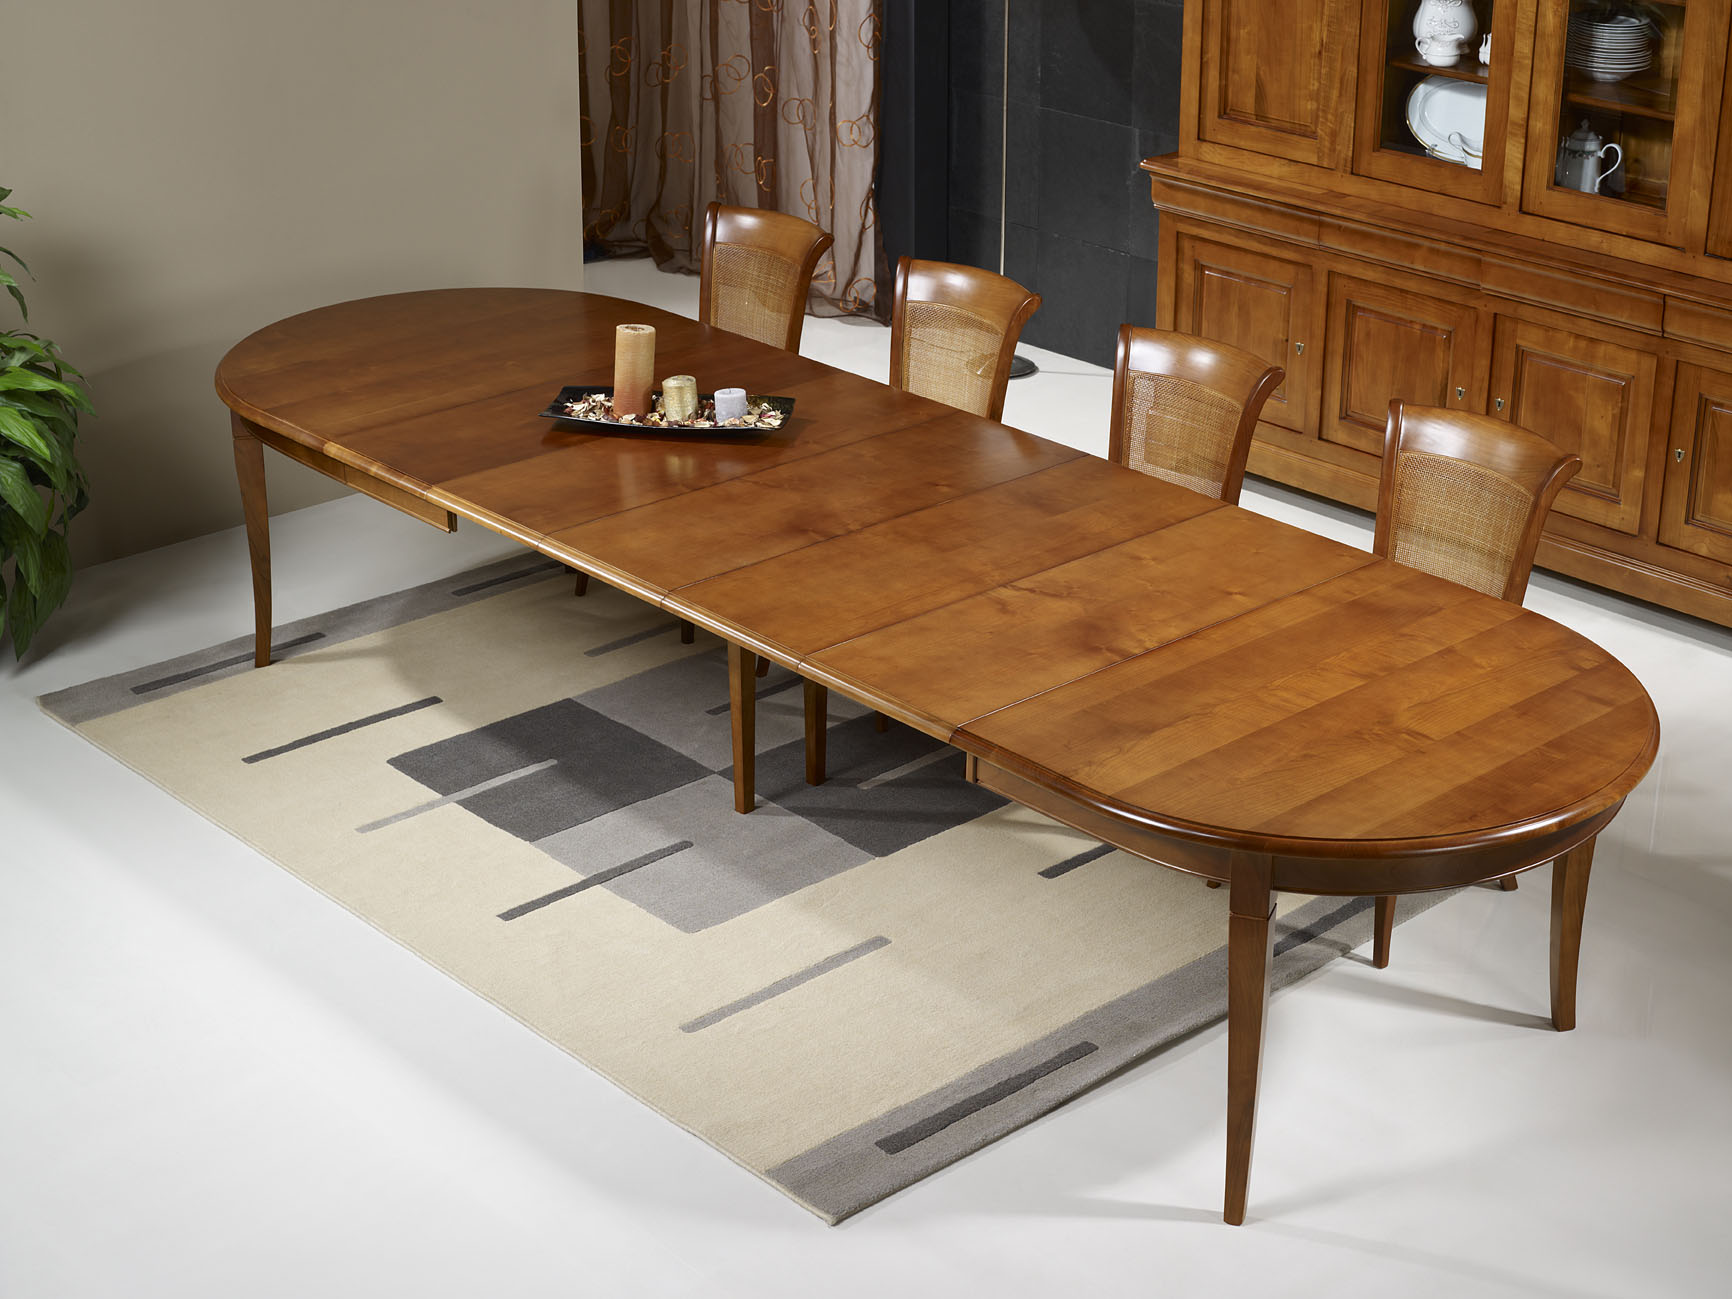 Table ovale 180x120 en merisier massif de style louis Table rectangulaire bois avec allonges